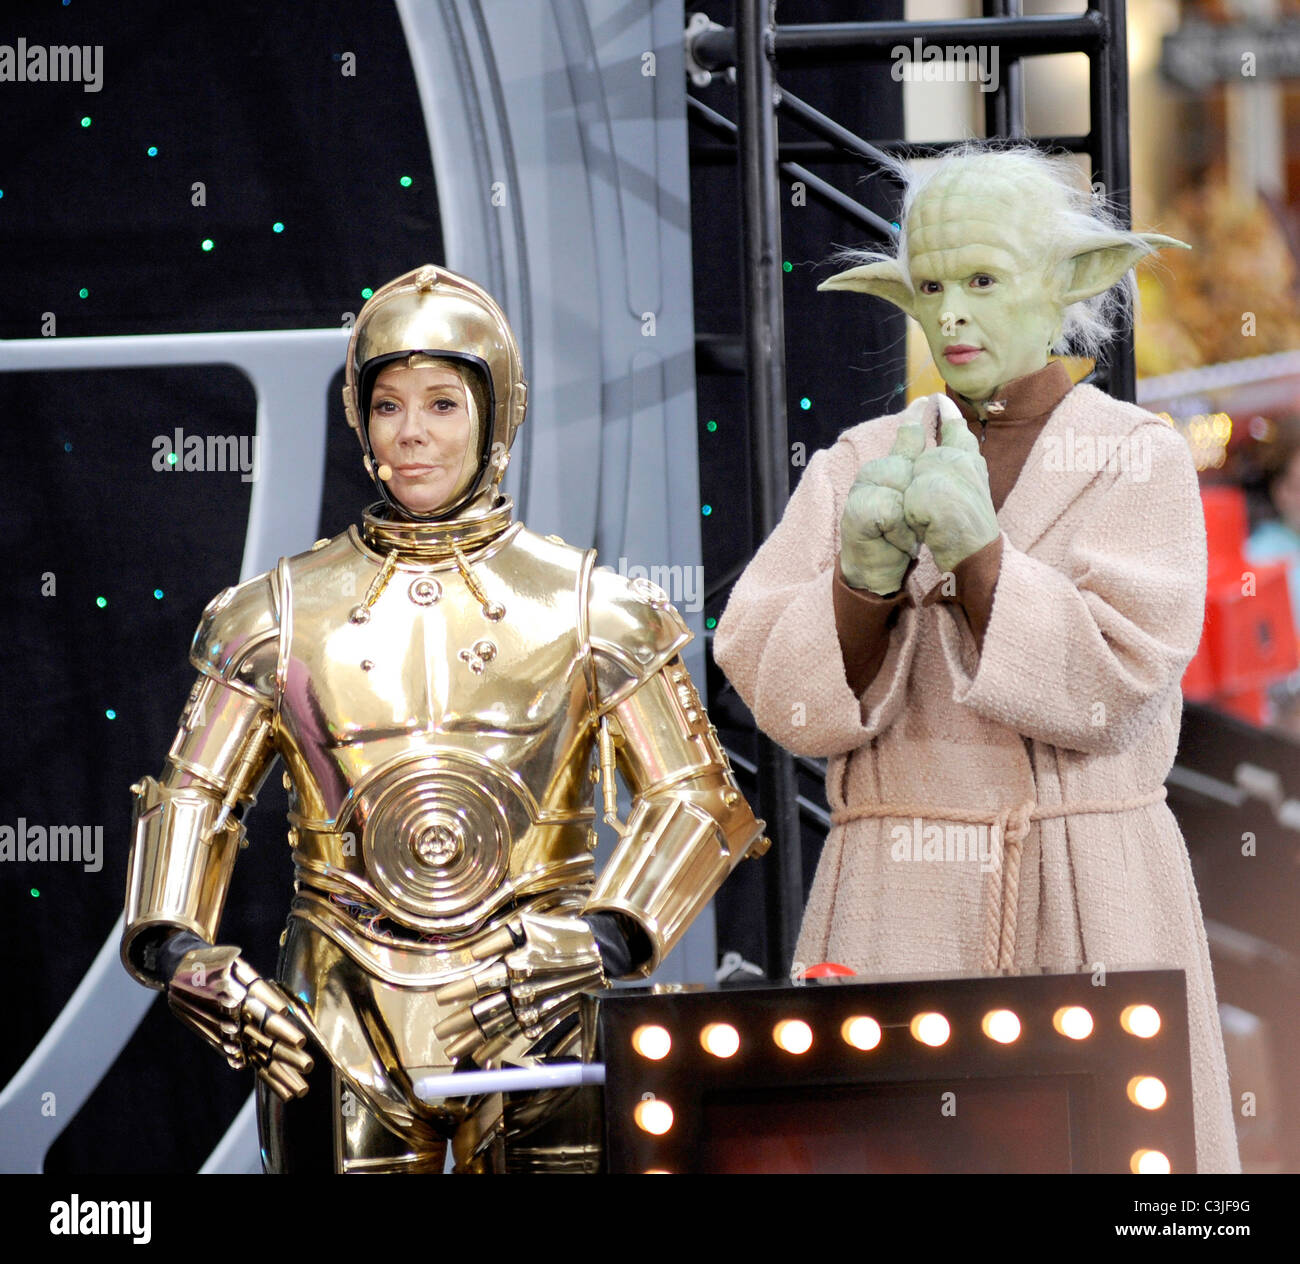 Kathie Lee Gifford As C 3PO And Hoda Kotb Yoda NBCs Today Show Anchors Dress The Cast Of Star Wars On Rockefeller